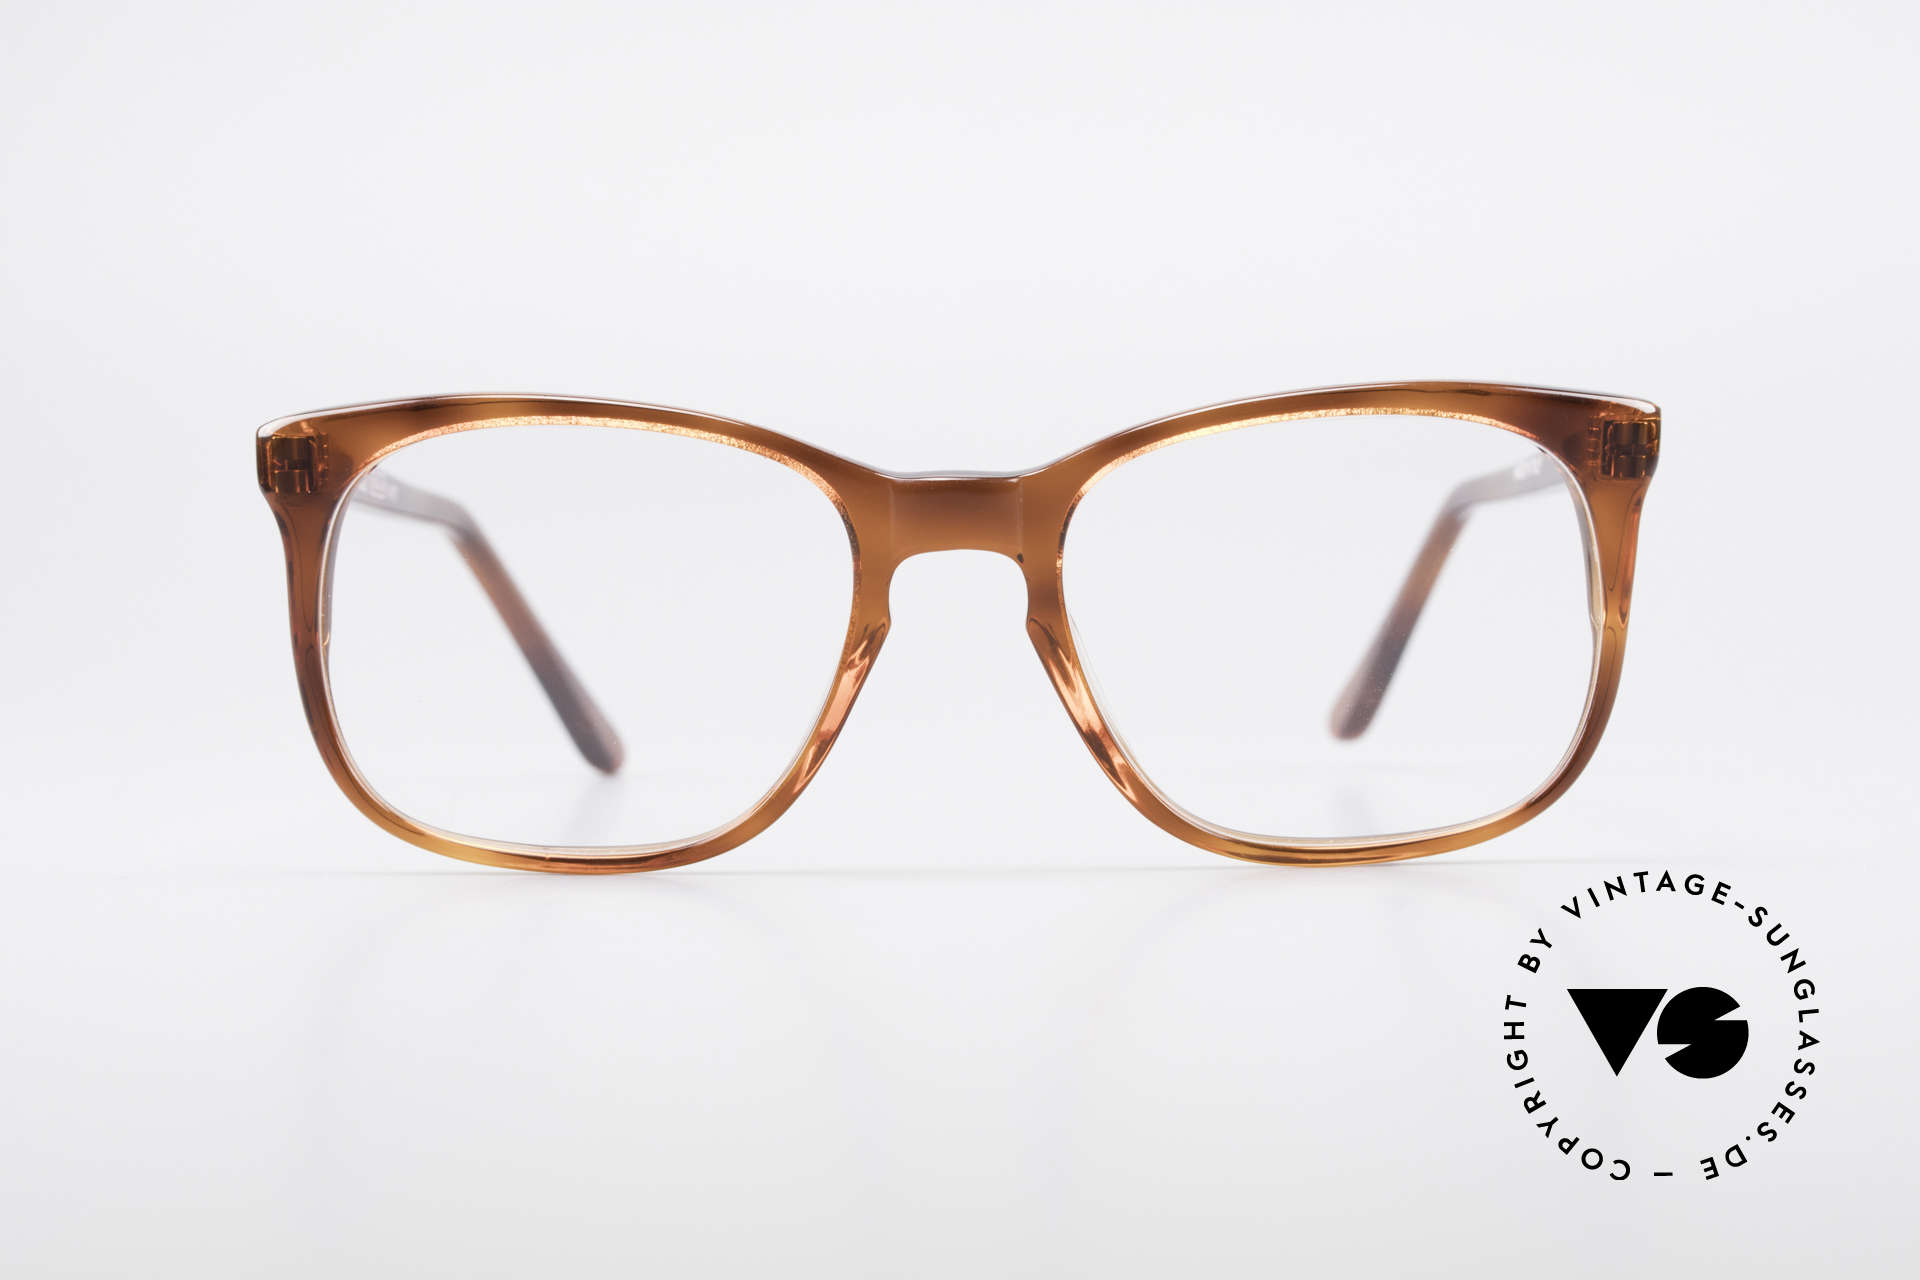 Persol 93145 Ratti Small Classic 80's Eyeglasses, perfect fit and comfort due to flexible temples, Made for Men and Women